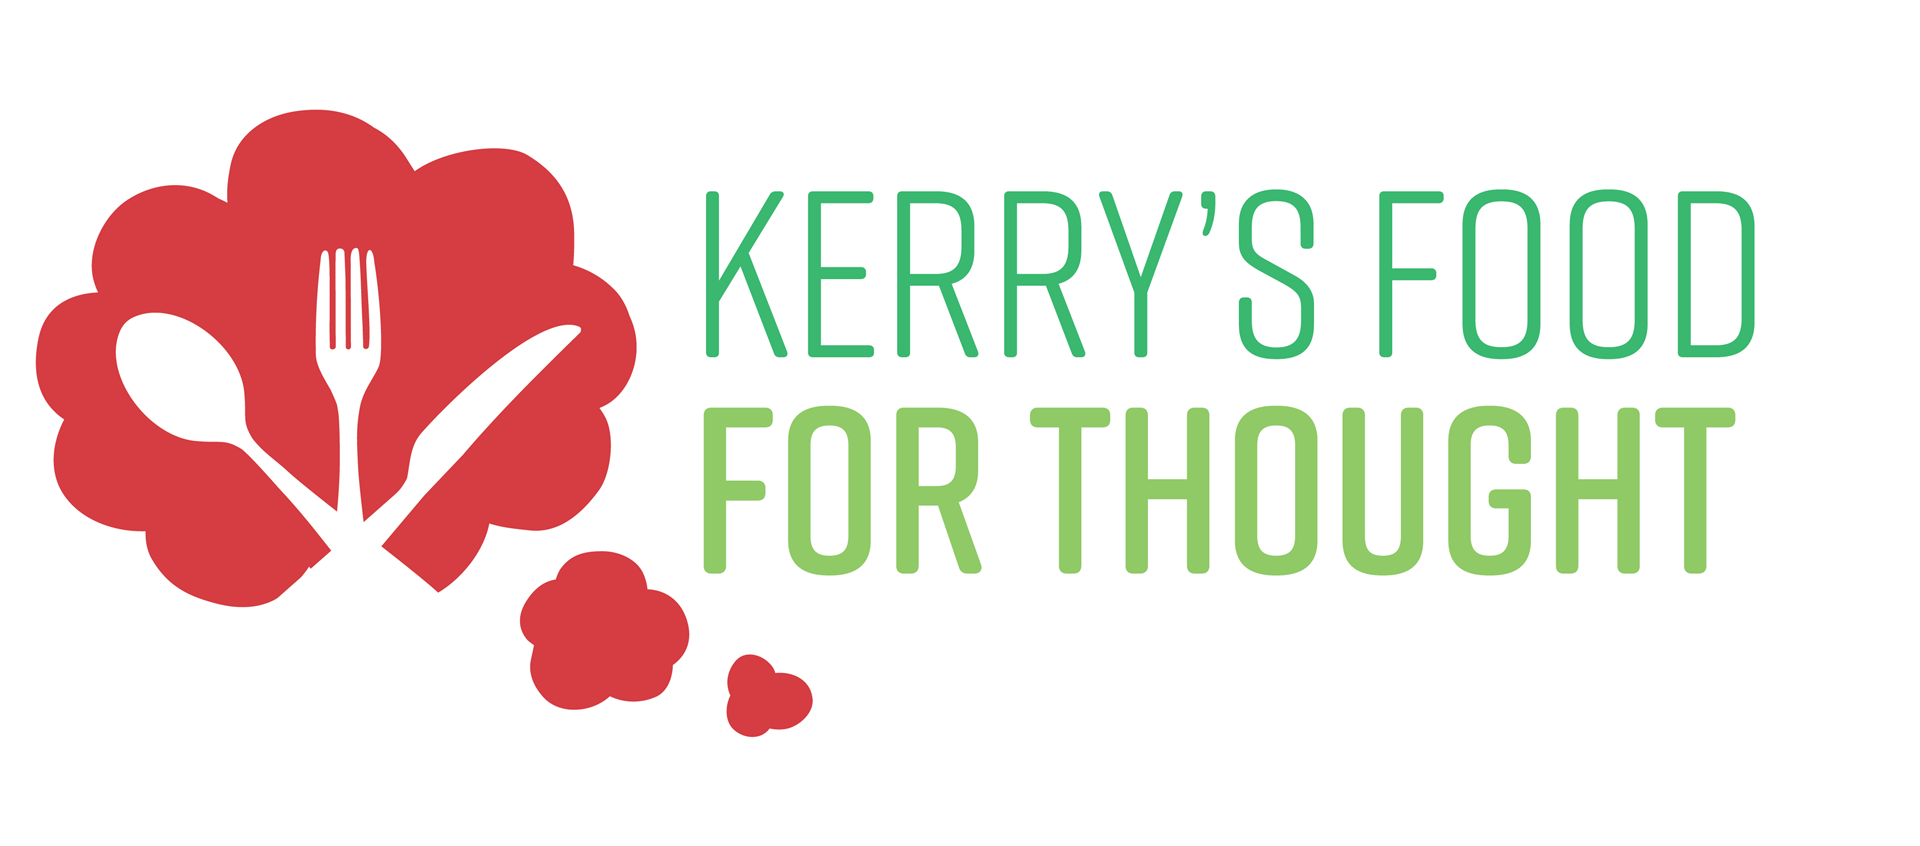 Kerry's Food for Thought